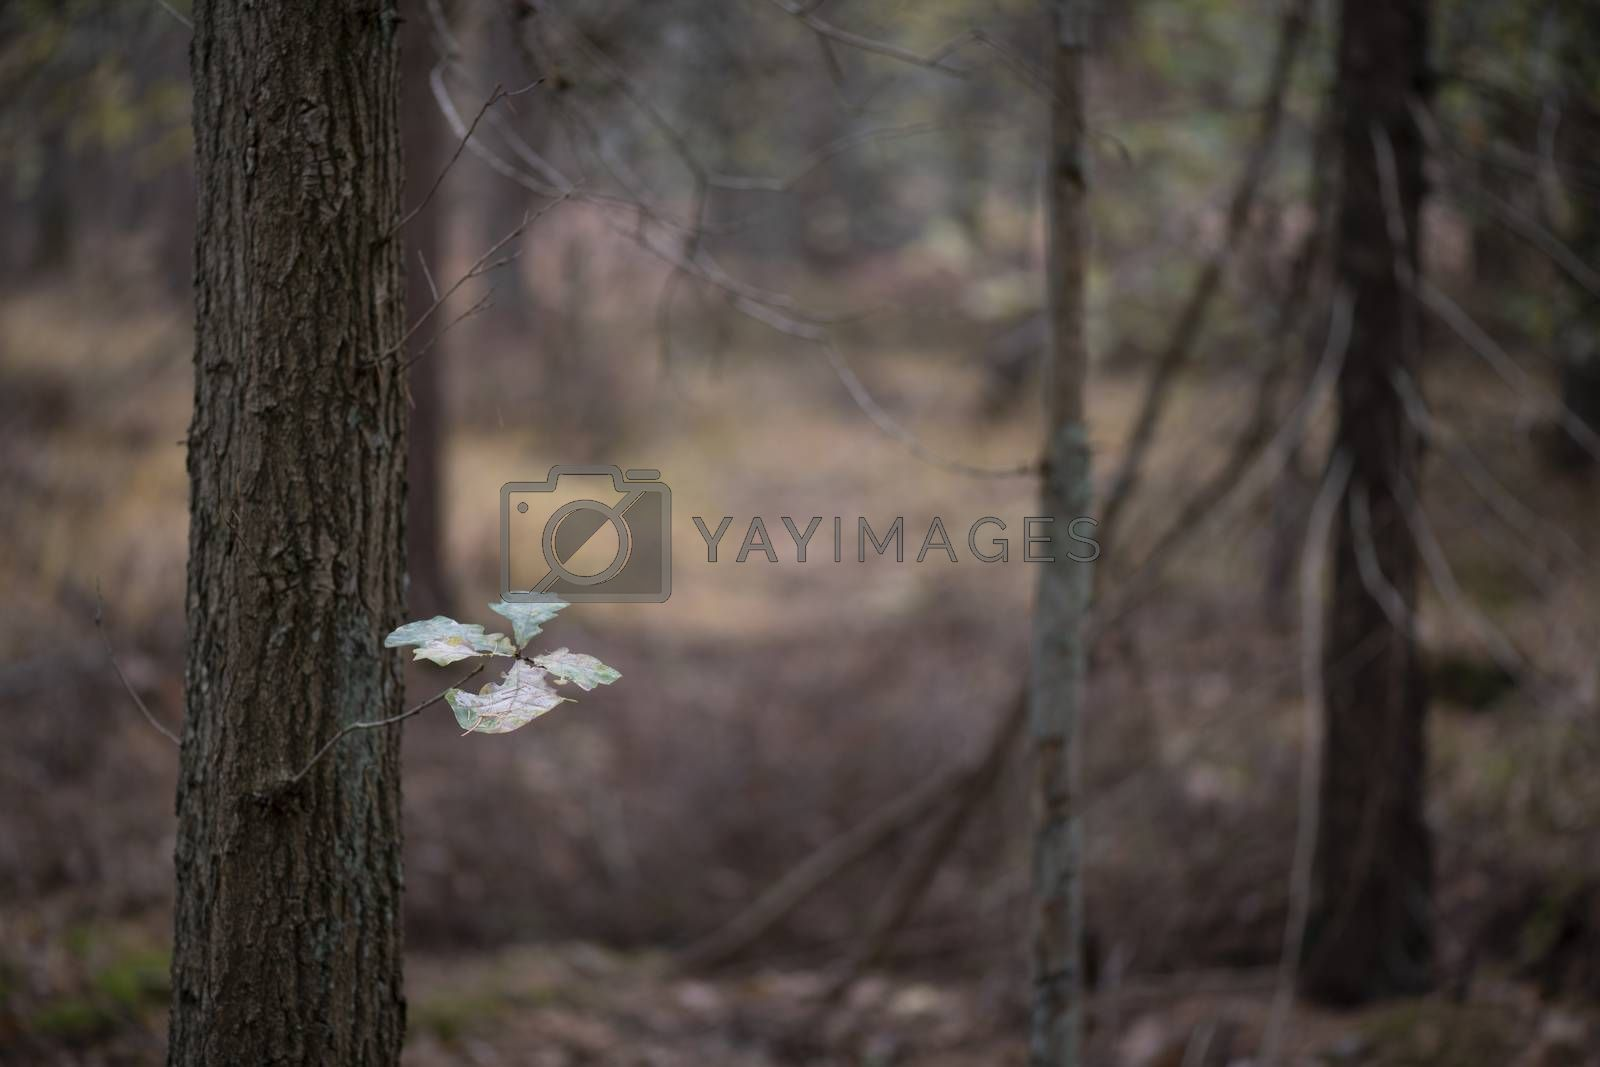 The last leaves to a tree in an autumn forest  by Tofotografie